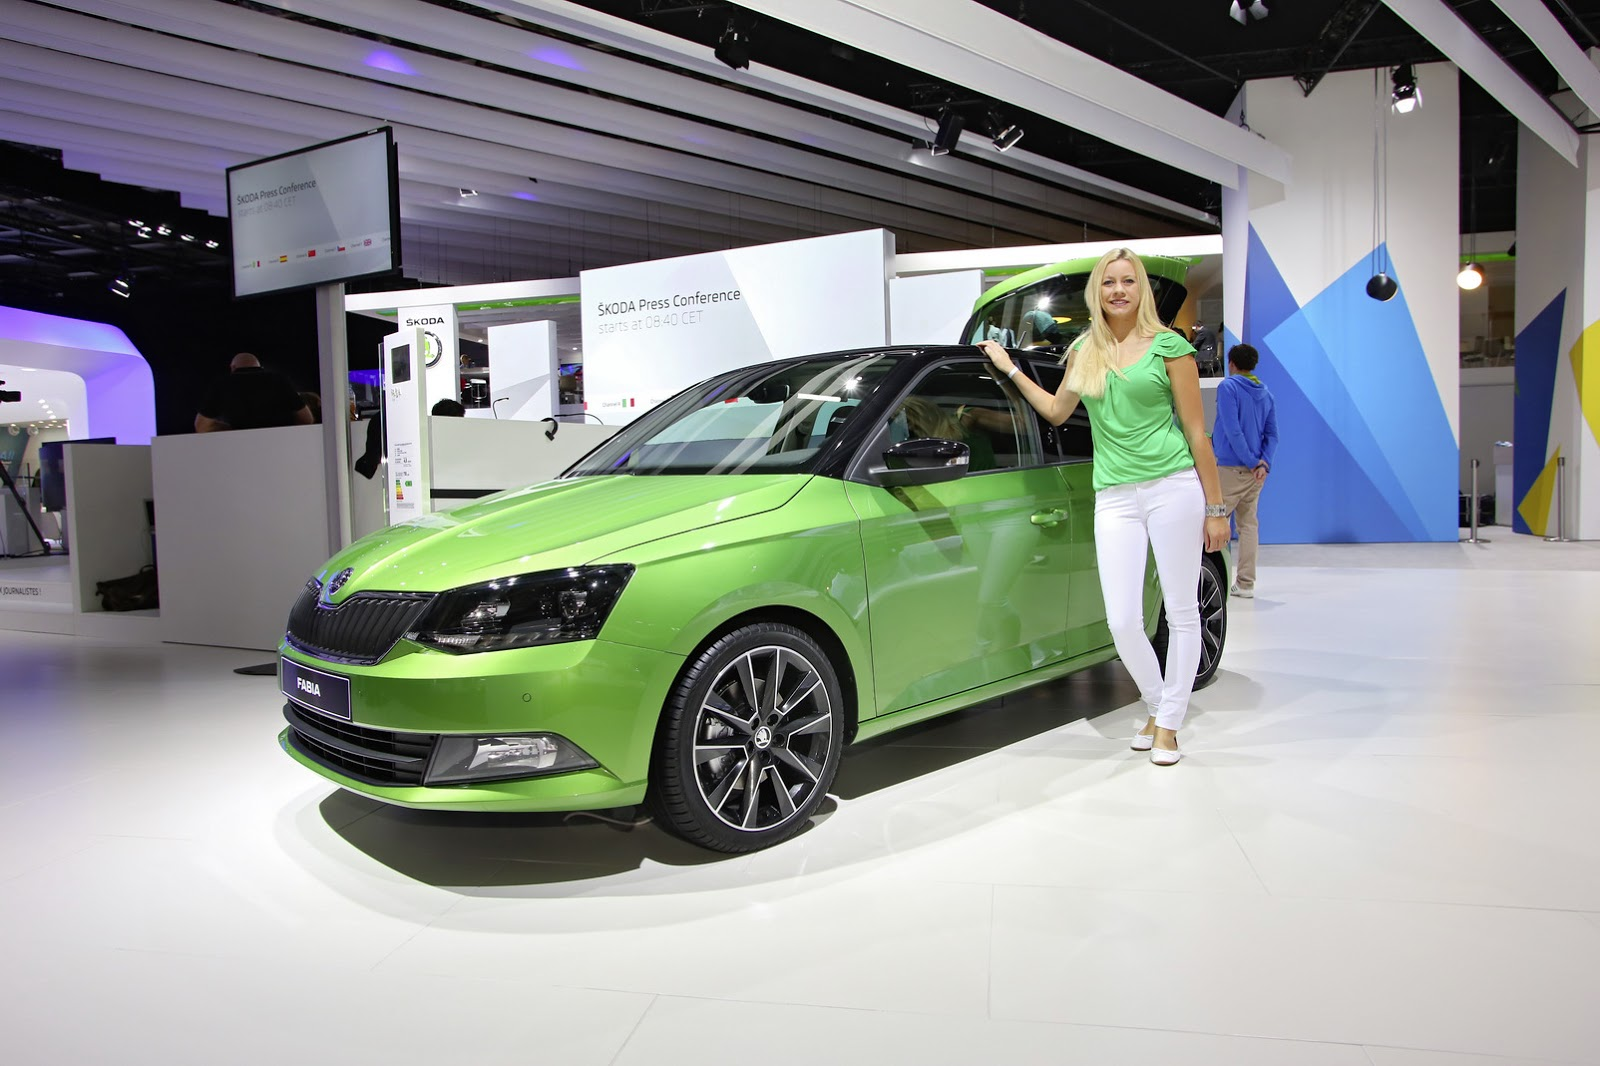 sharp new skoda fabia and fabia combi arrive in paris carscoops. Black Bedroom Furniture Sets. Home Design Ideas